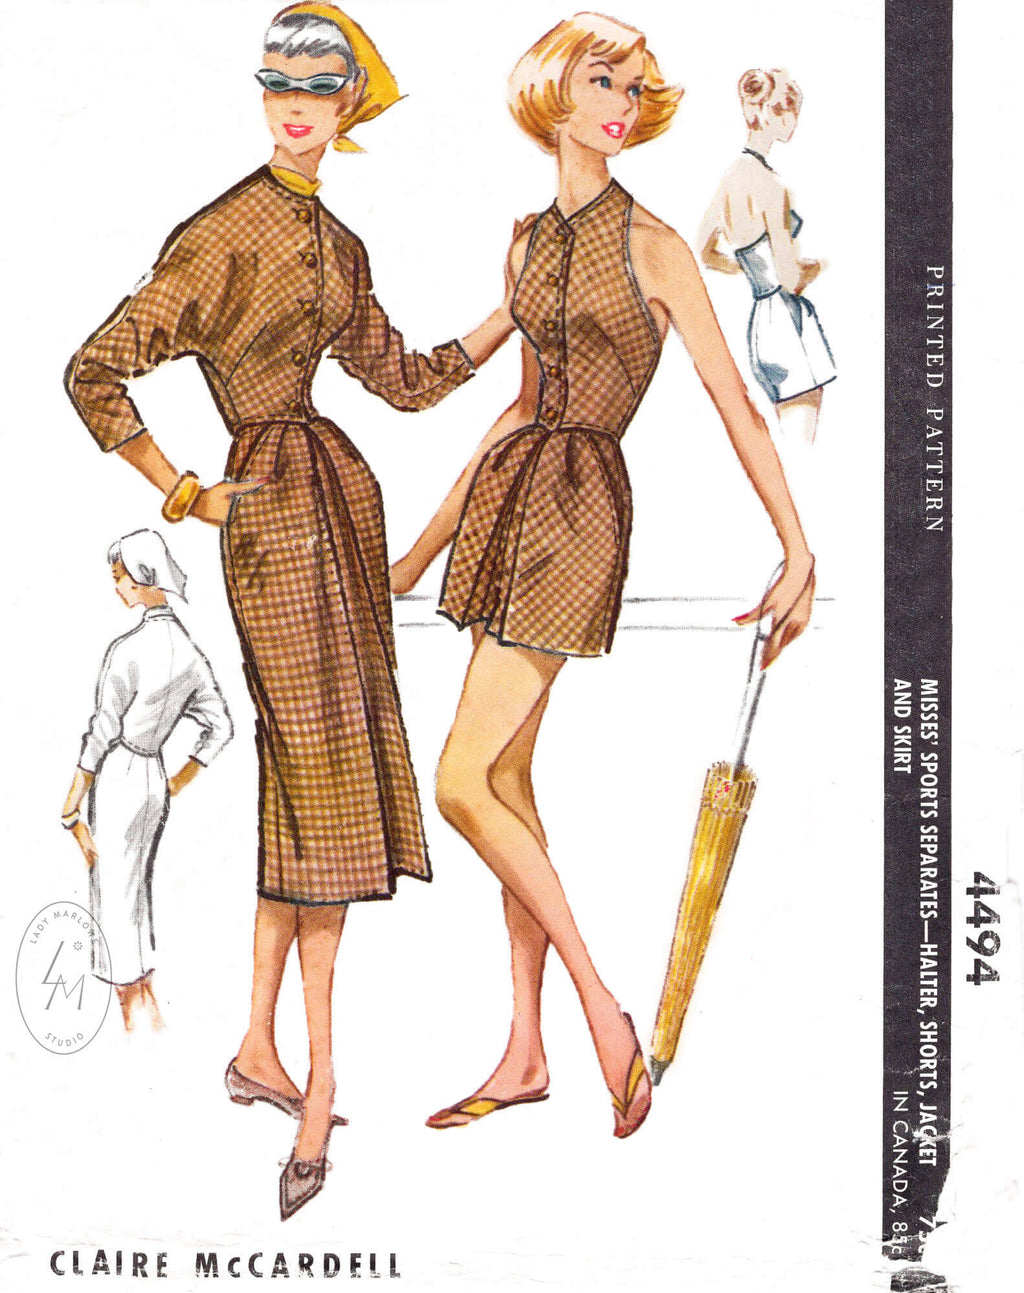 McCall's 4494 Claire McCardell 1950s 1960s vintage sewing pattern repo dolam sleeve dress beachwear